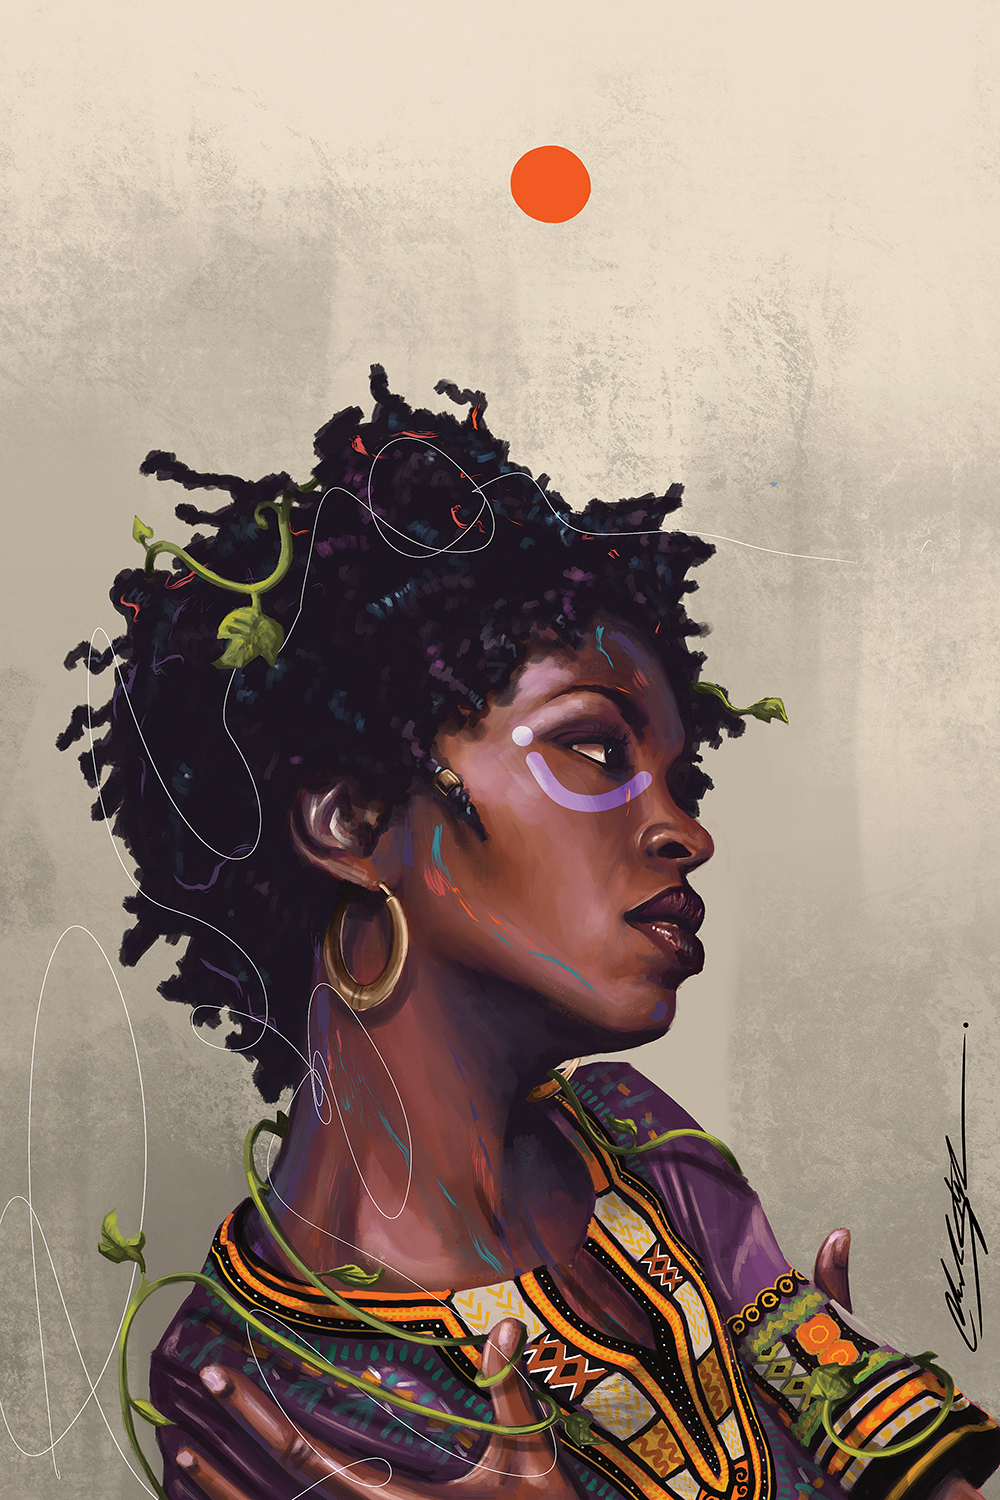 """Ms Lauryn Zion"" by Chuck Styles shows the profile of American singer Lauryn Hill wearing an Afrocentric top with ivy wrapped around her body."